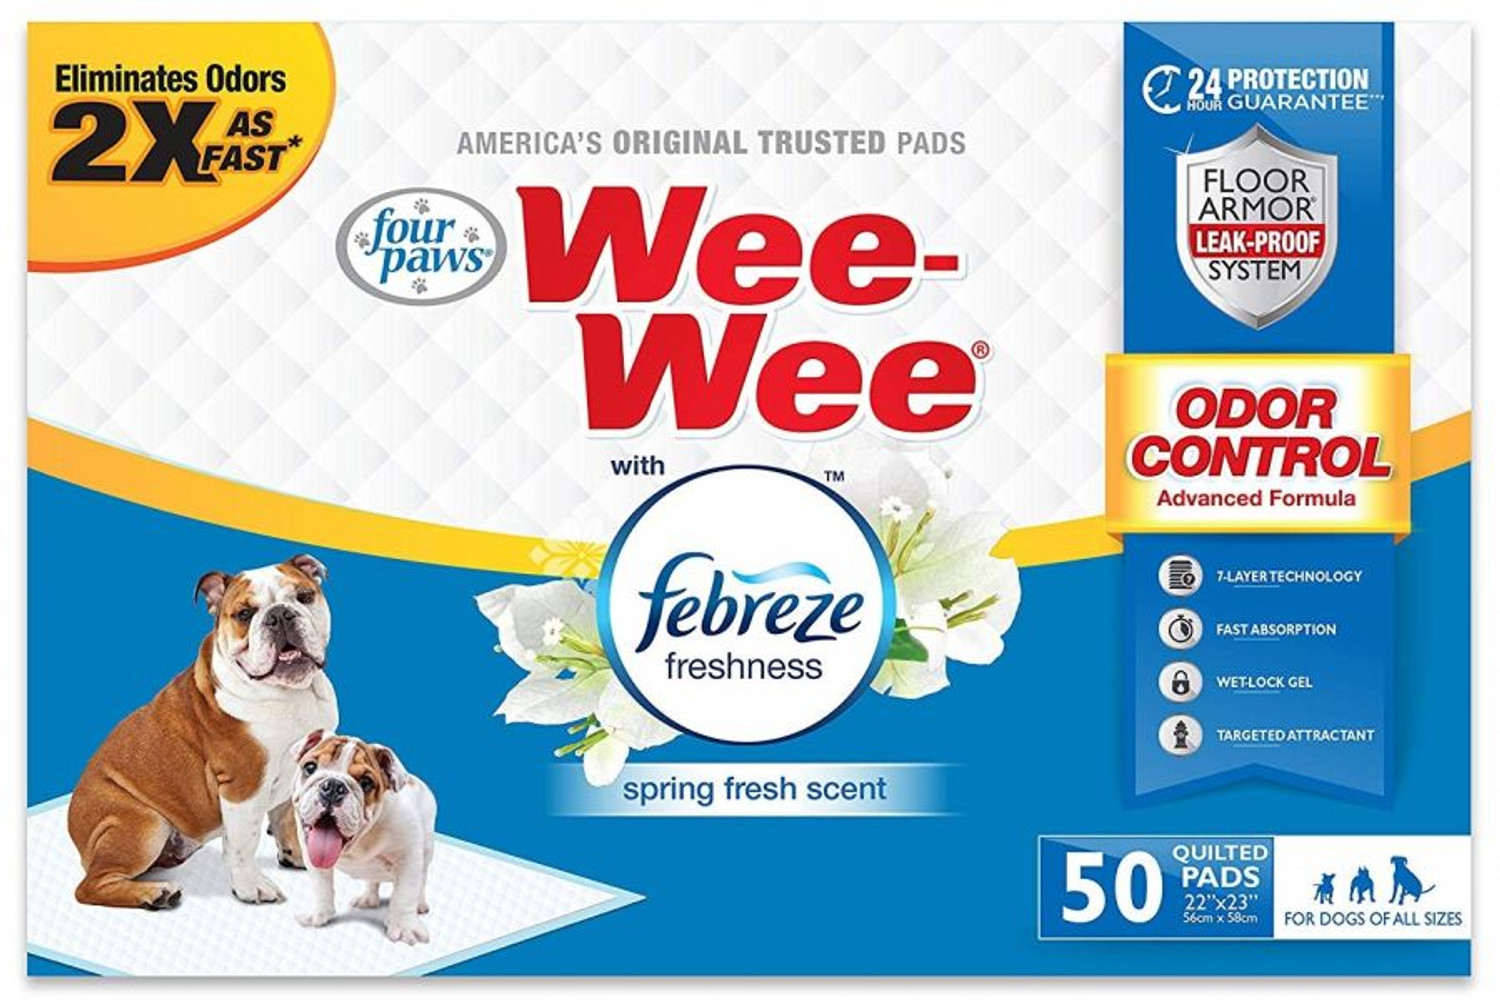 """50 Count Four Paws Wee-Wee Dog Pads with Febreze Freshness - Spring  Fresh Scent - 22"""" x 23"""""""